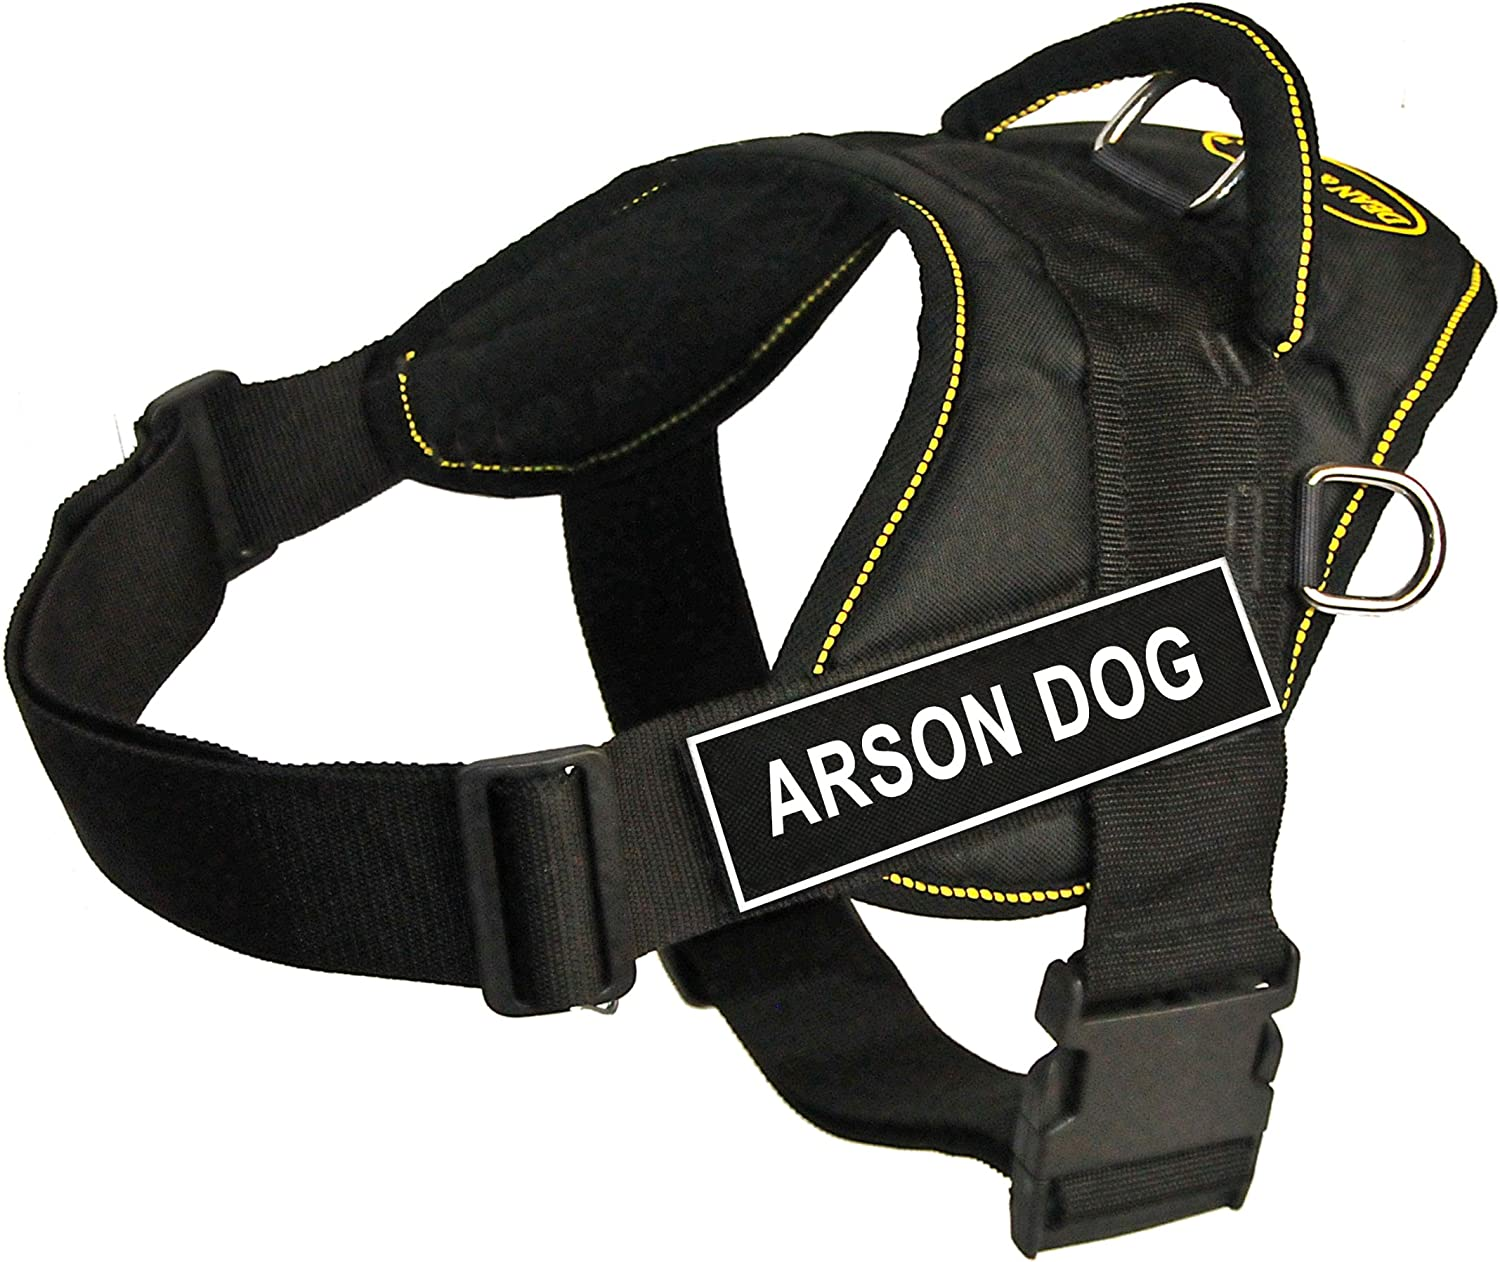 Dean & Tyler Fun Works 20Inch to 23Inch Pet Harness, XSmall, Arson Dog, Black with Yellow Trim